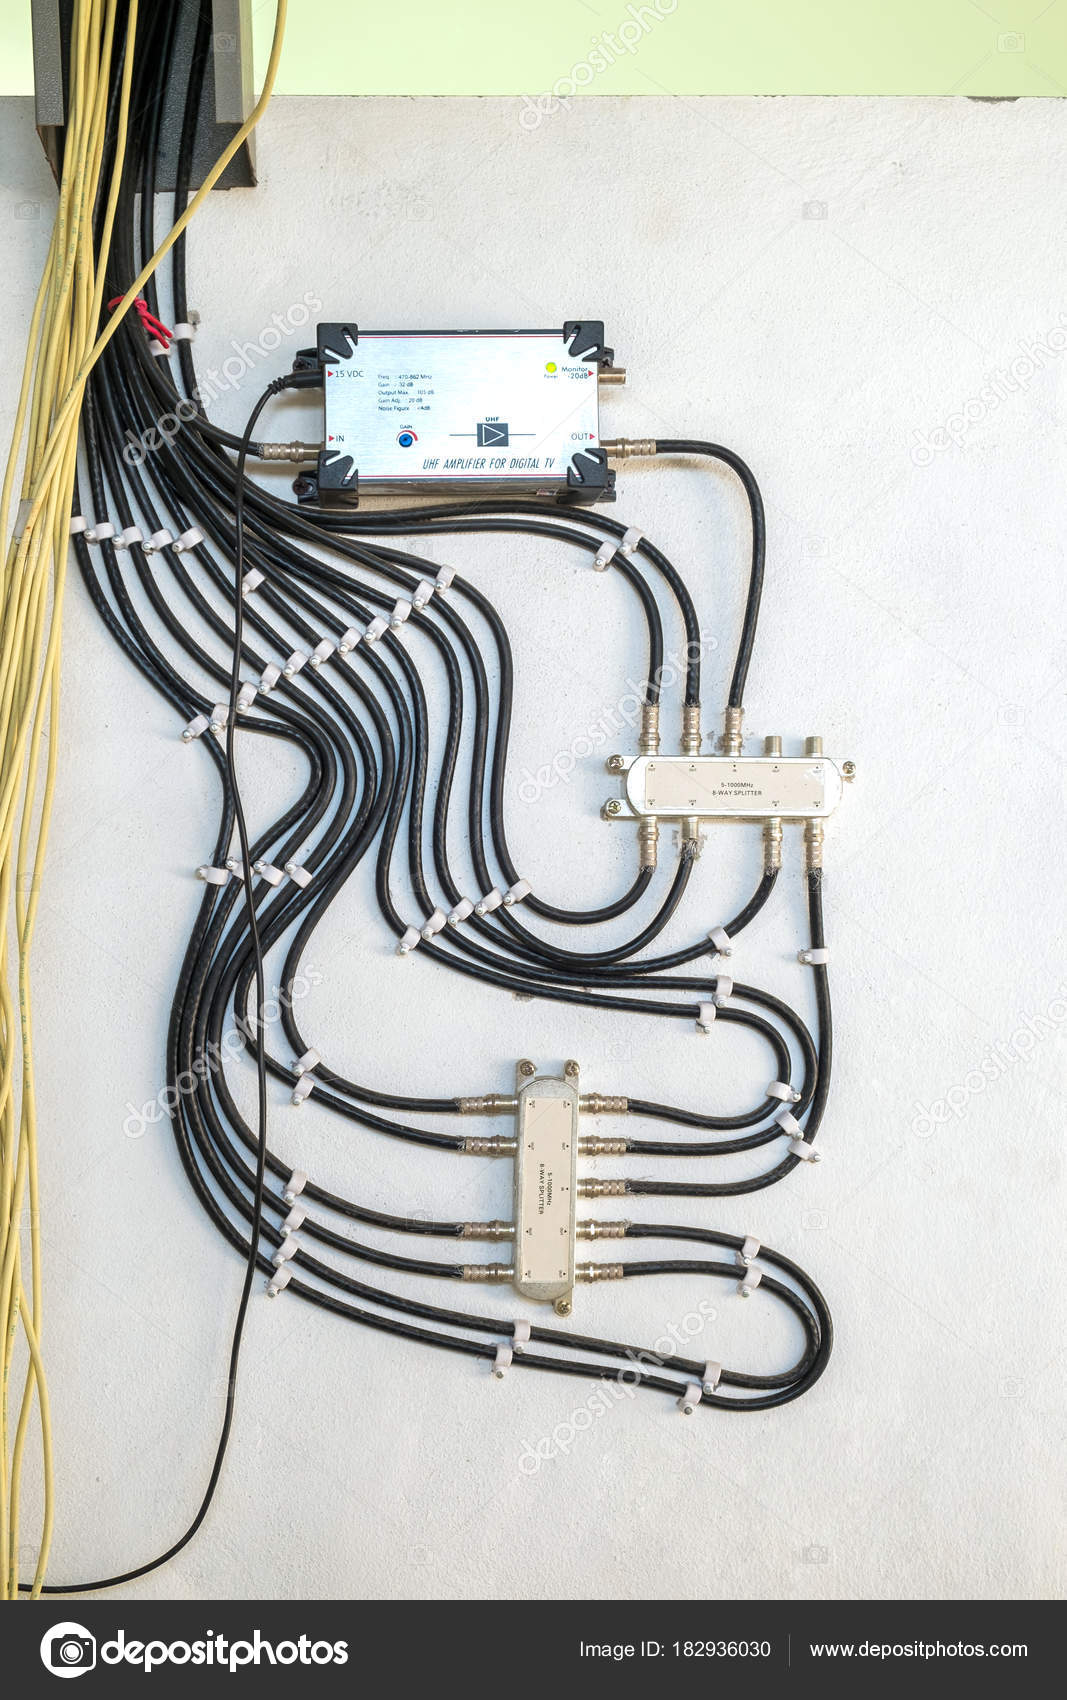 hight resolution of cable television system by wire with cable signal splitter in ap stock photo